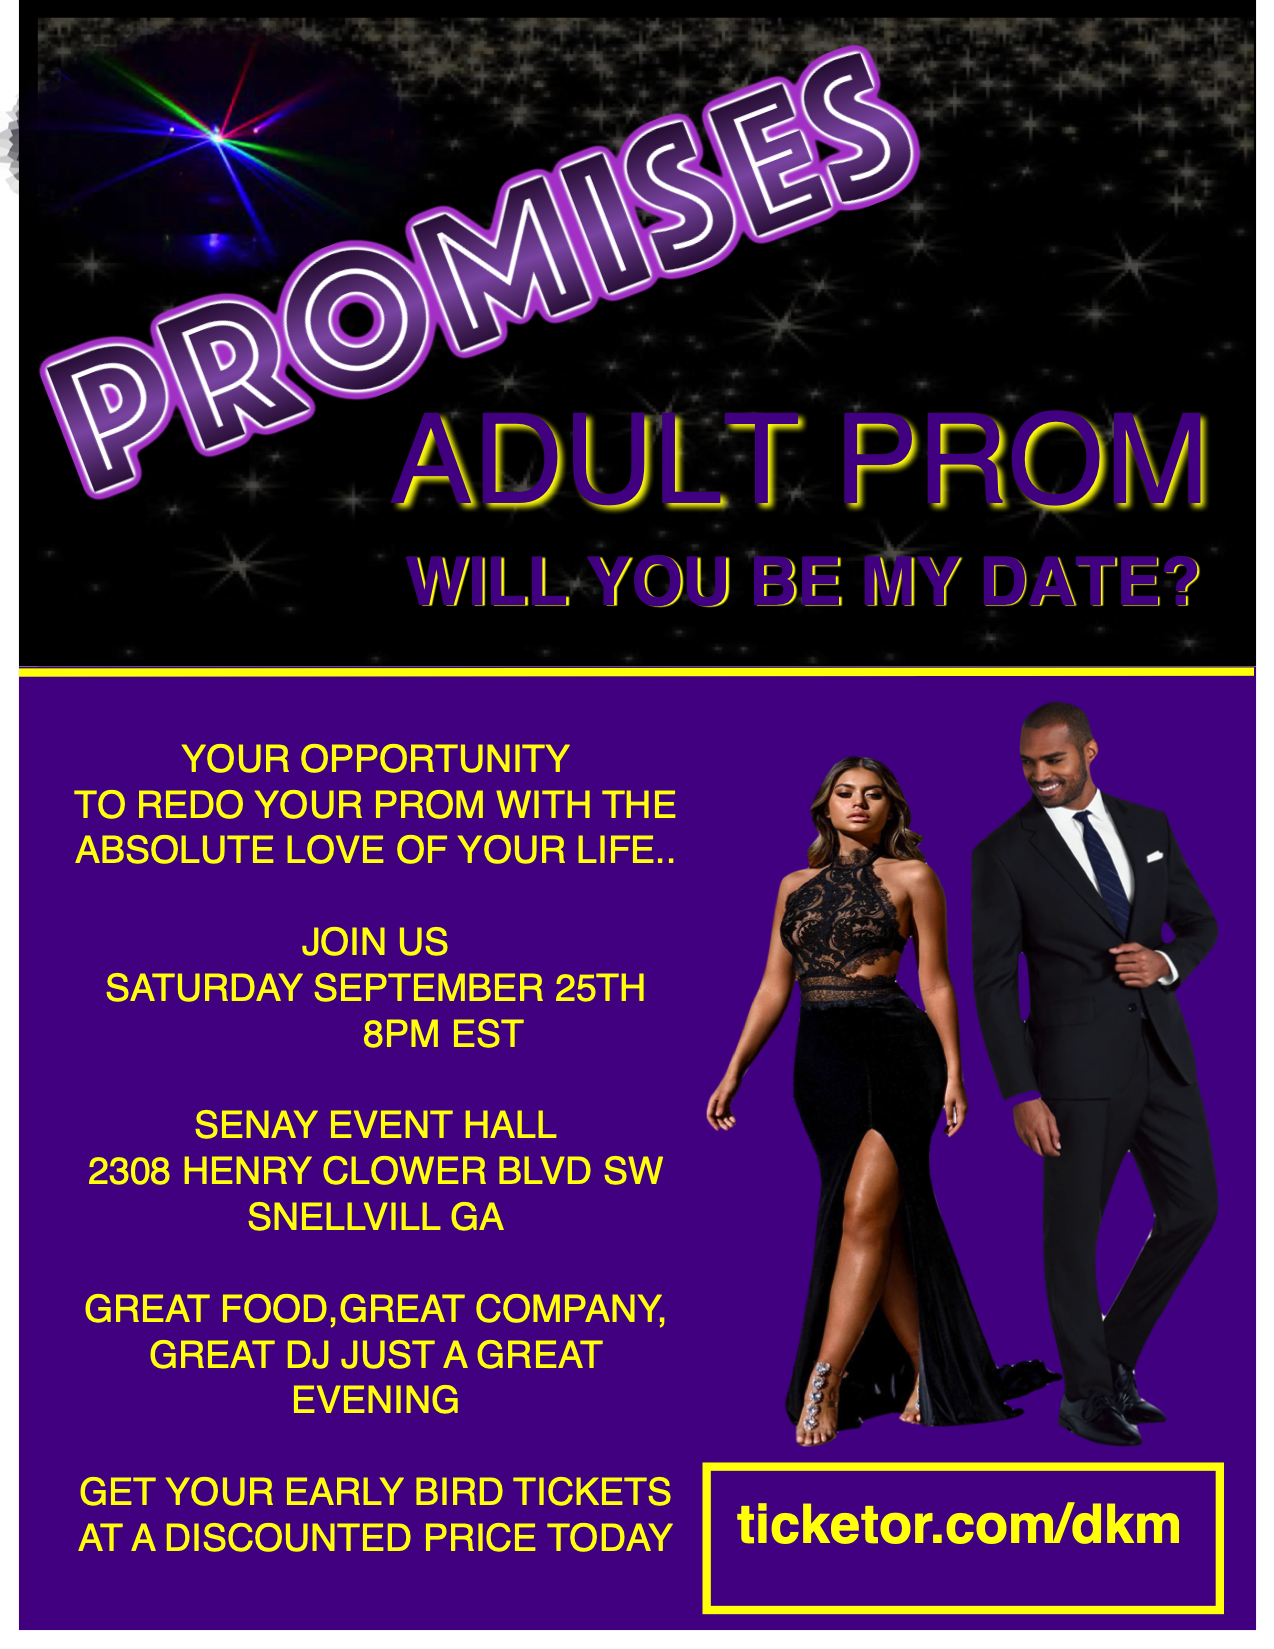 PROMISES ADULT PROM on Sep 25, 20:00@SENAY EVENT HALL - Buy tickets and Get information on DKM MEDIA & ASSOCIATES